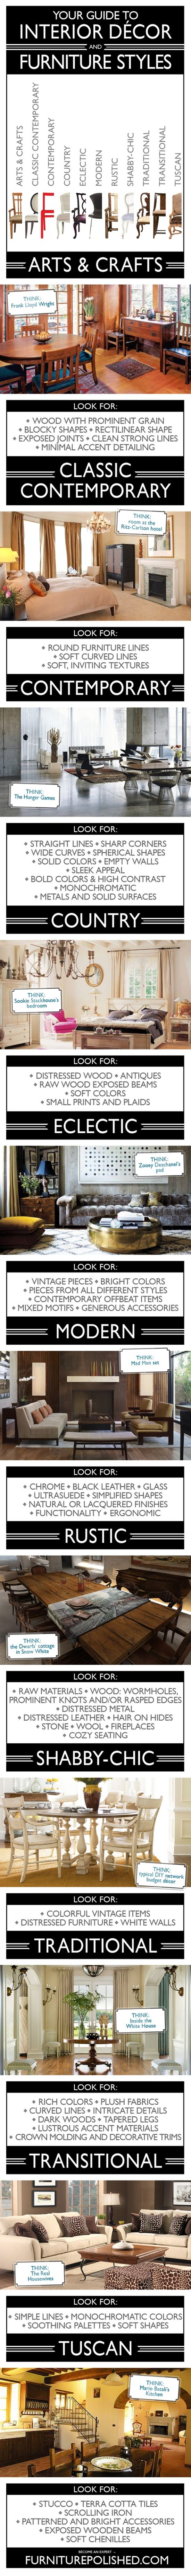 The Ultimate Infographic for understanding interior design/furniture styles @ Home Designer Ideas